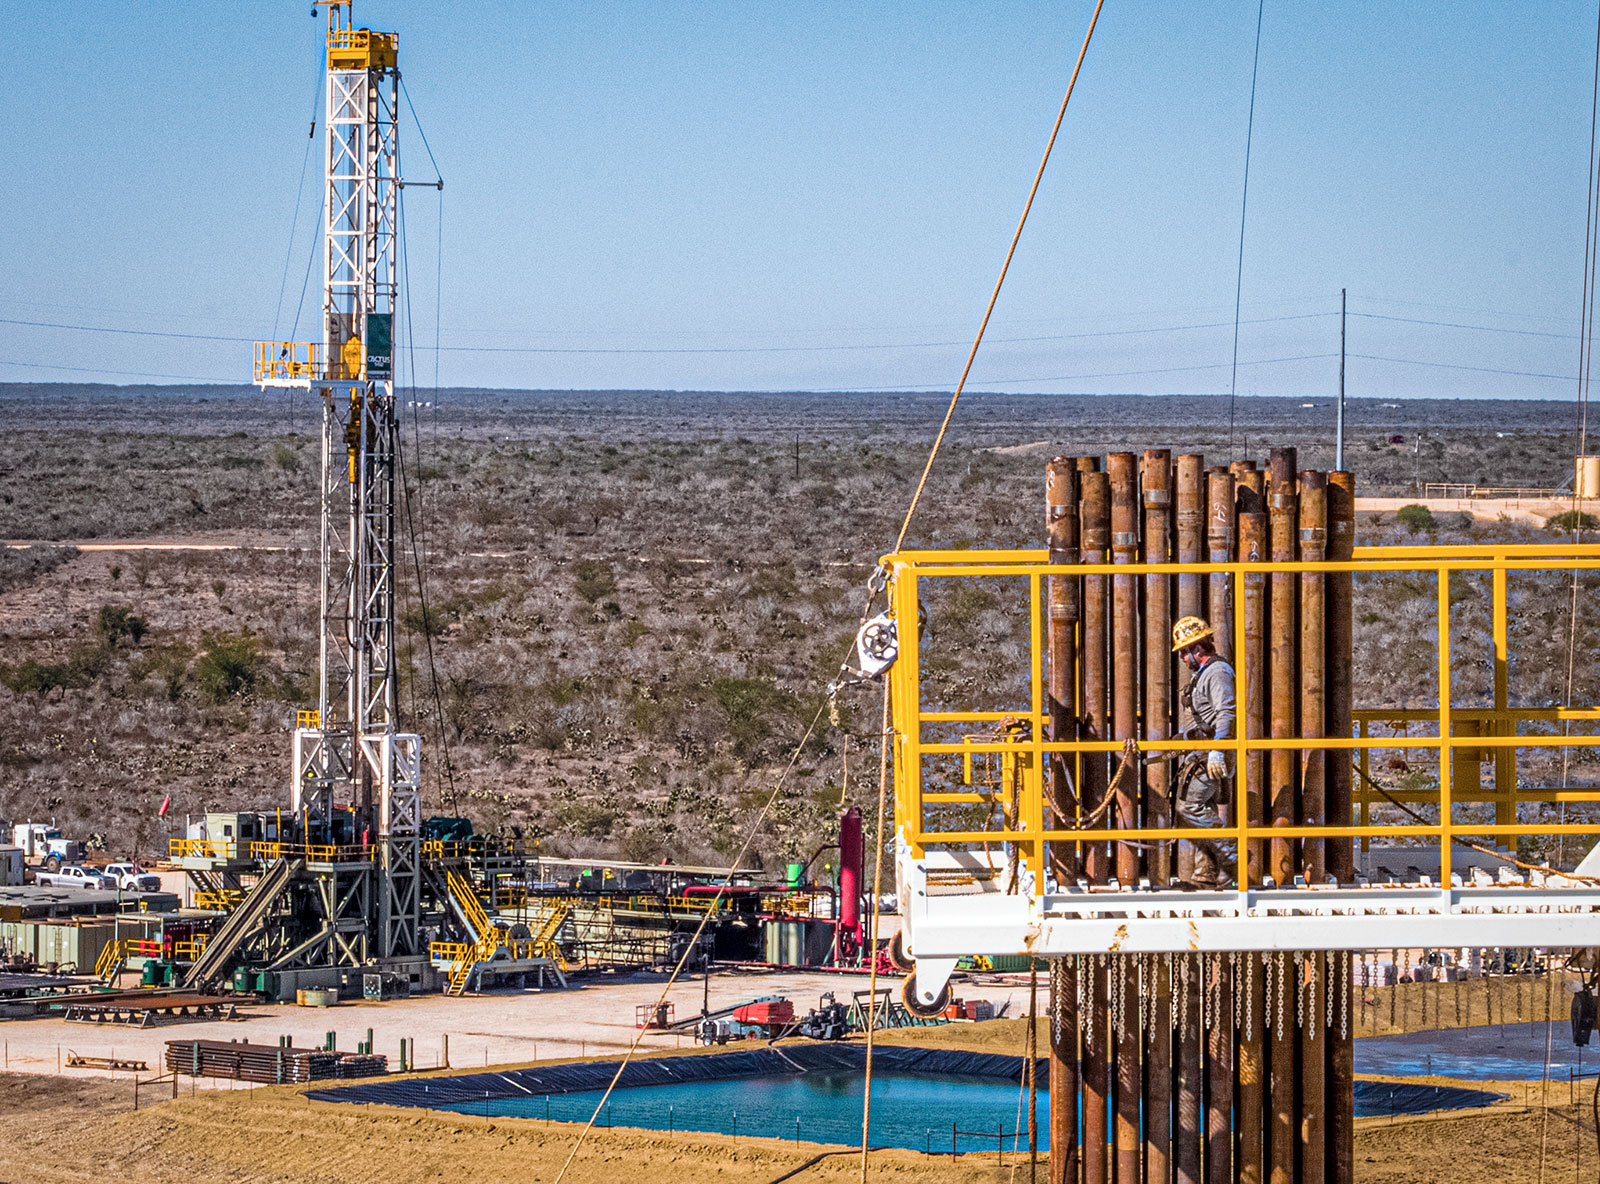 BPX operations in Tilden, Texas